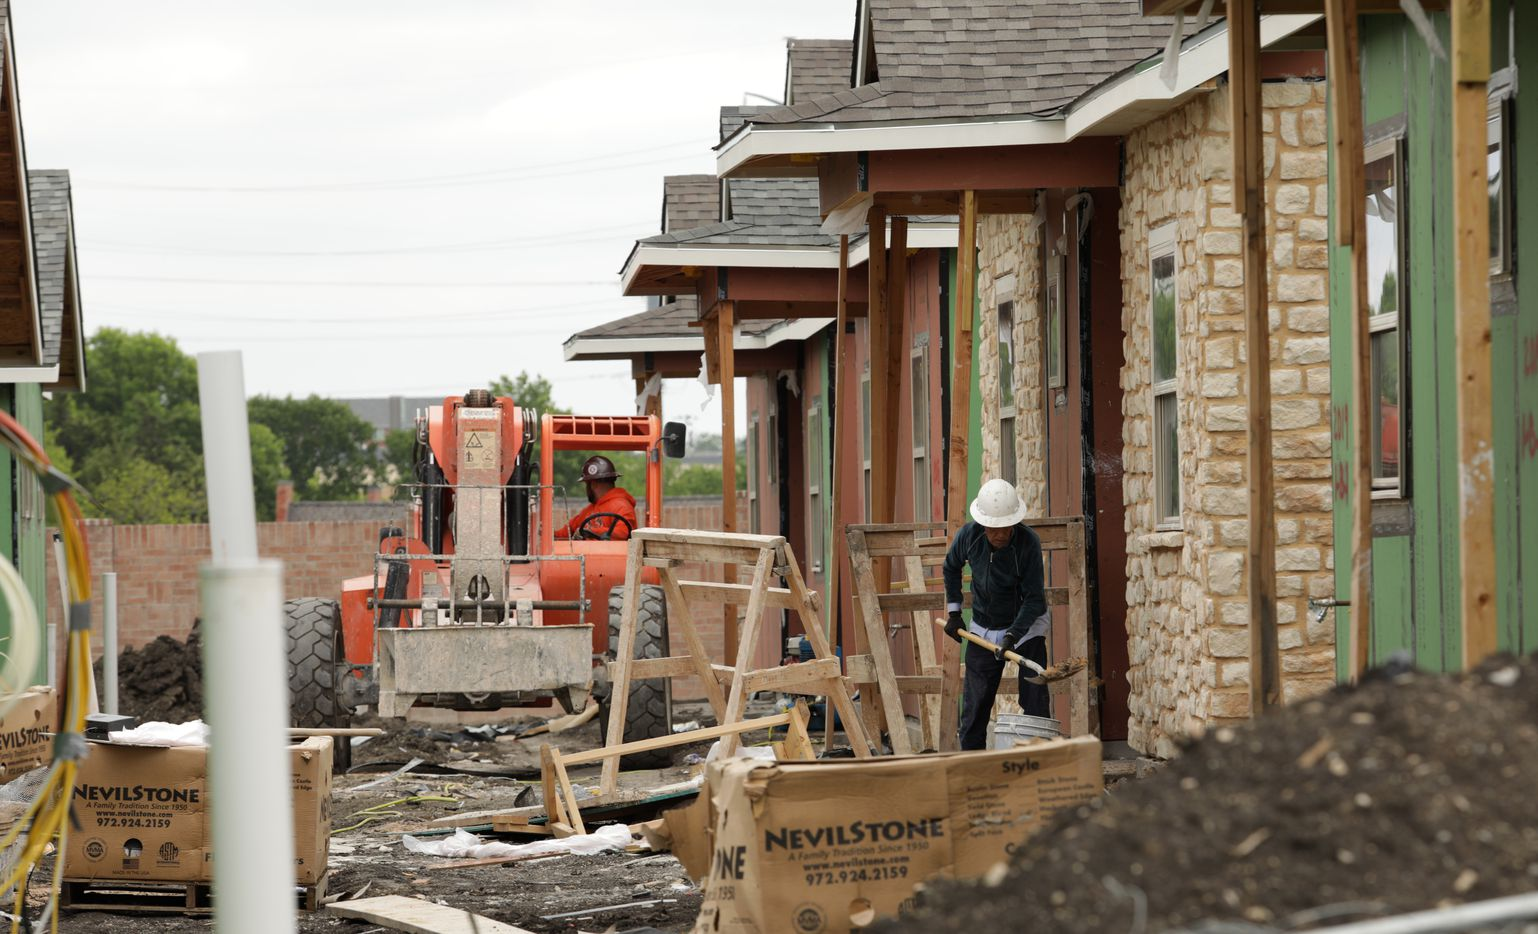 Workers build the homes at the Avilla Northside home community in McKinney.